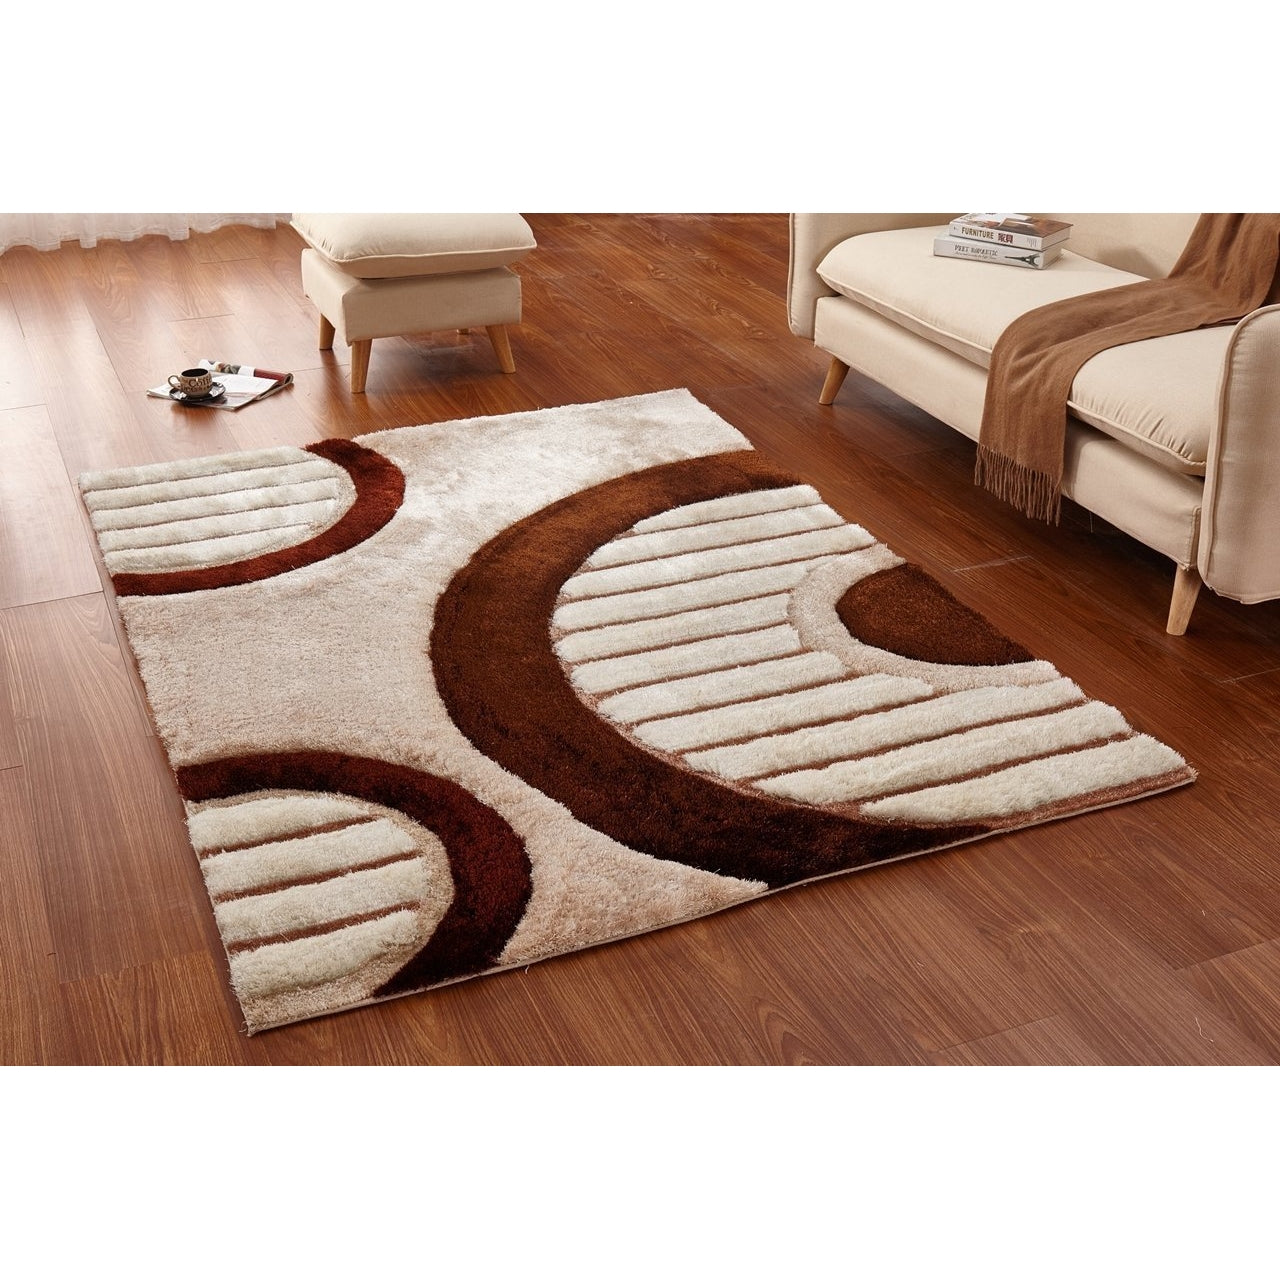 CSR4091 - Casa Regina Shaggy 3D Lined Circle Brown/Beige Area Rug - Bellaria Furniture HomeStore